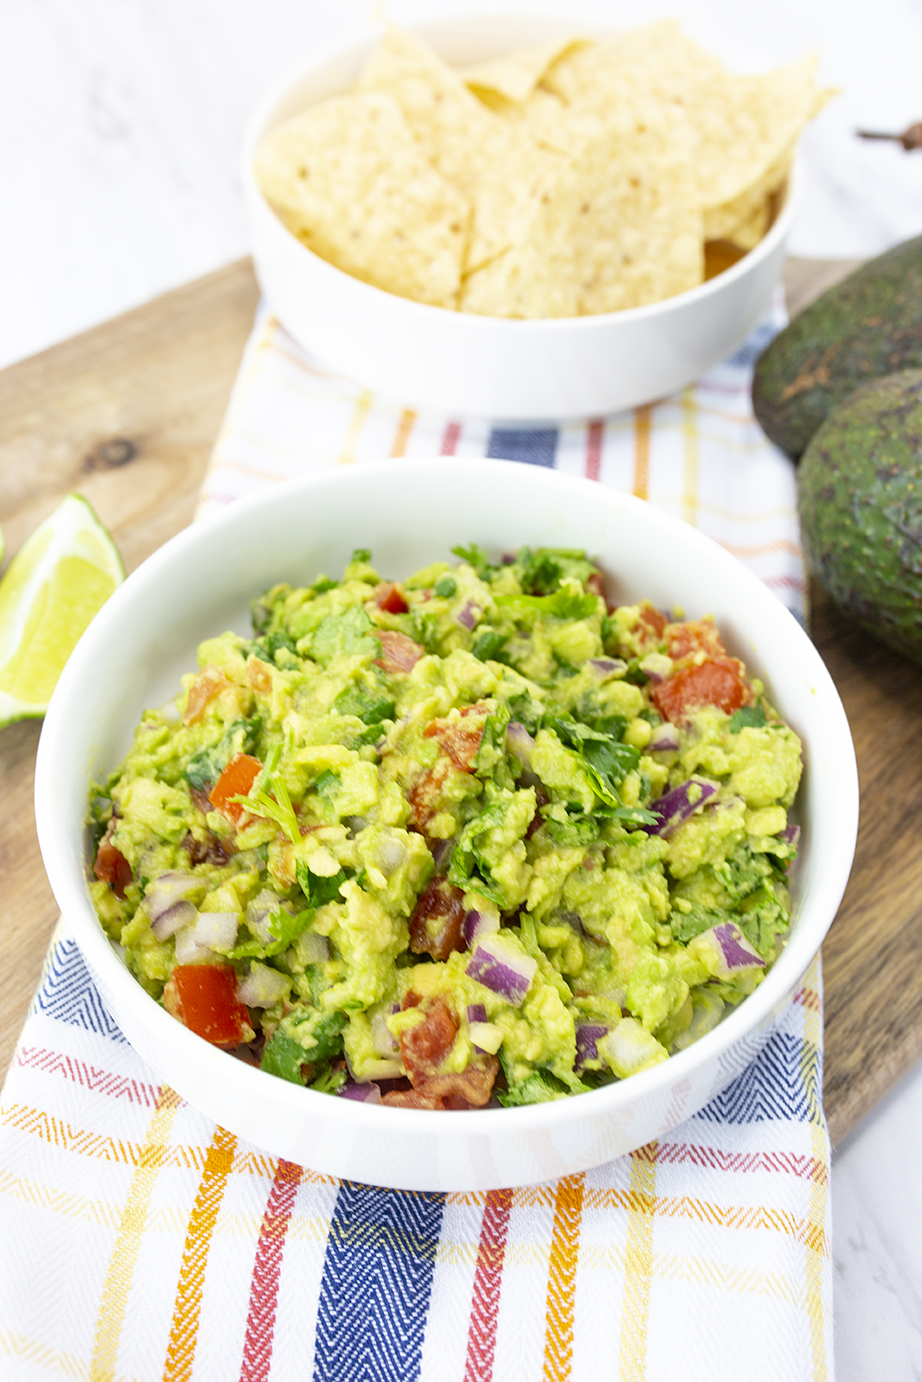 guacamole, chips, avocados and limes, easy recipe